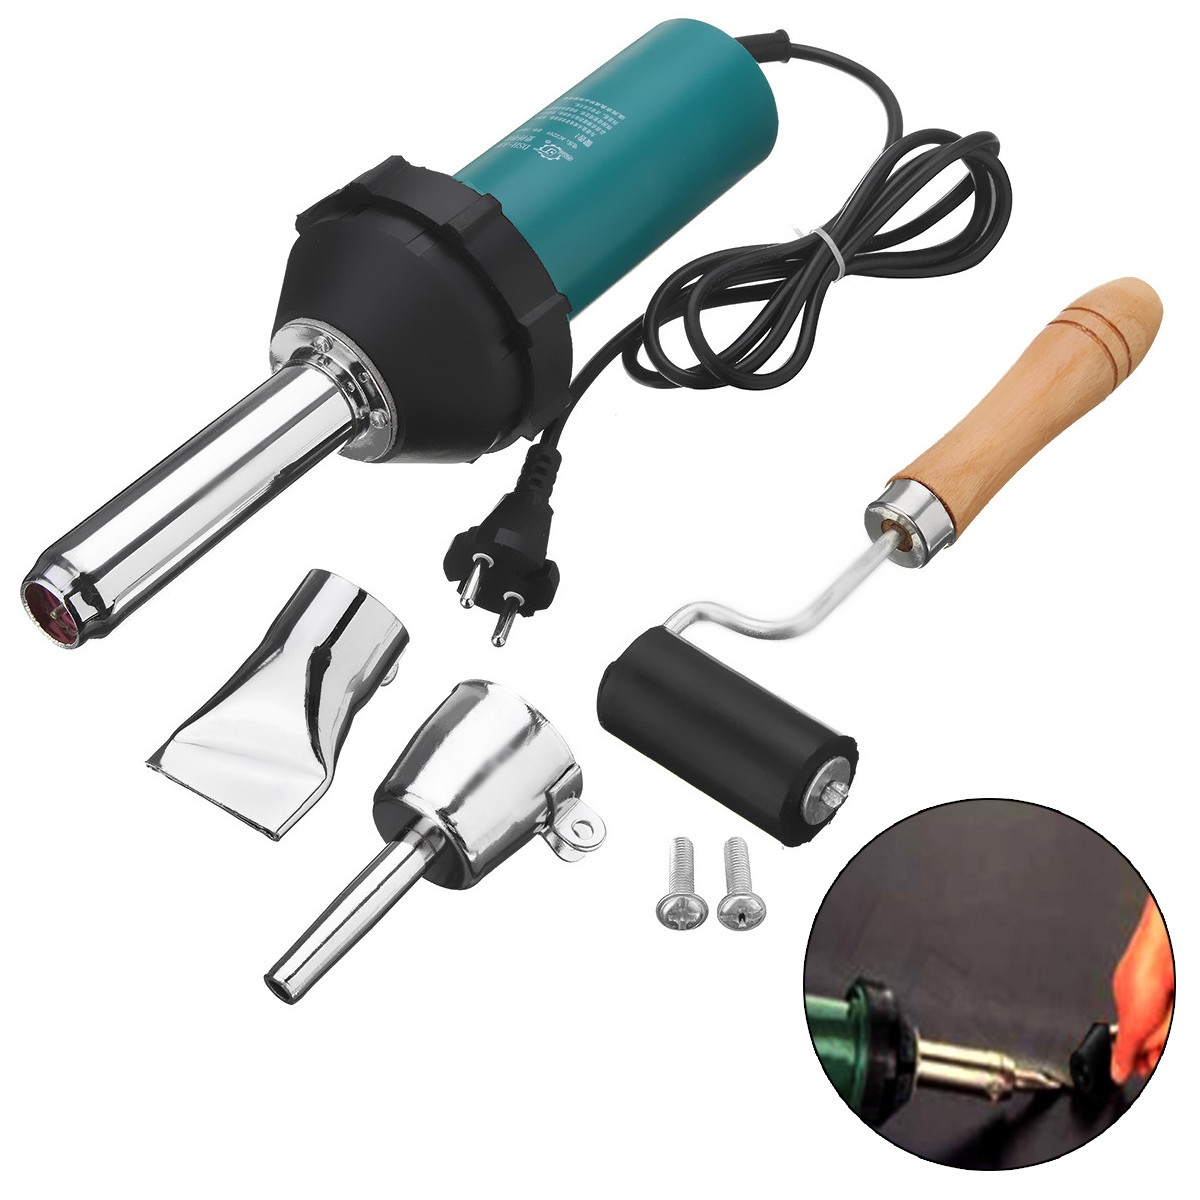 1080W 220V 50Hz Plastic Hot Air Welding Gun with Pencil Tip Nozzle & Flat Tip & Pressure Roller Heat Gun Kit